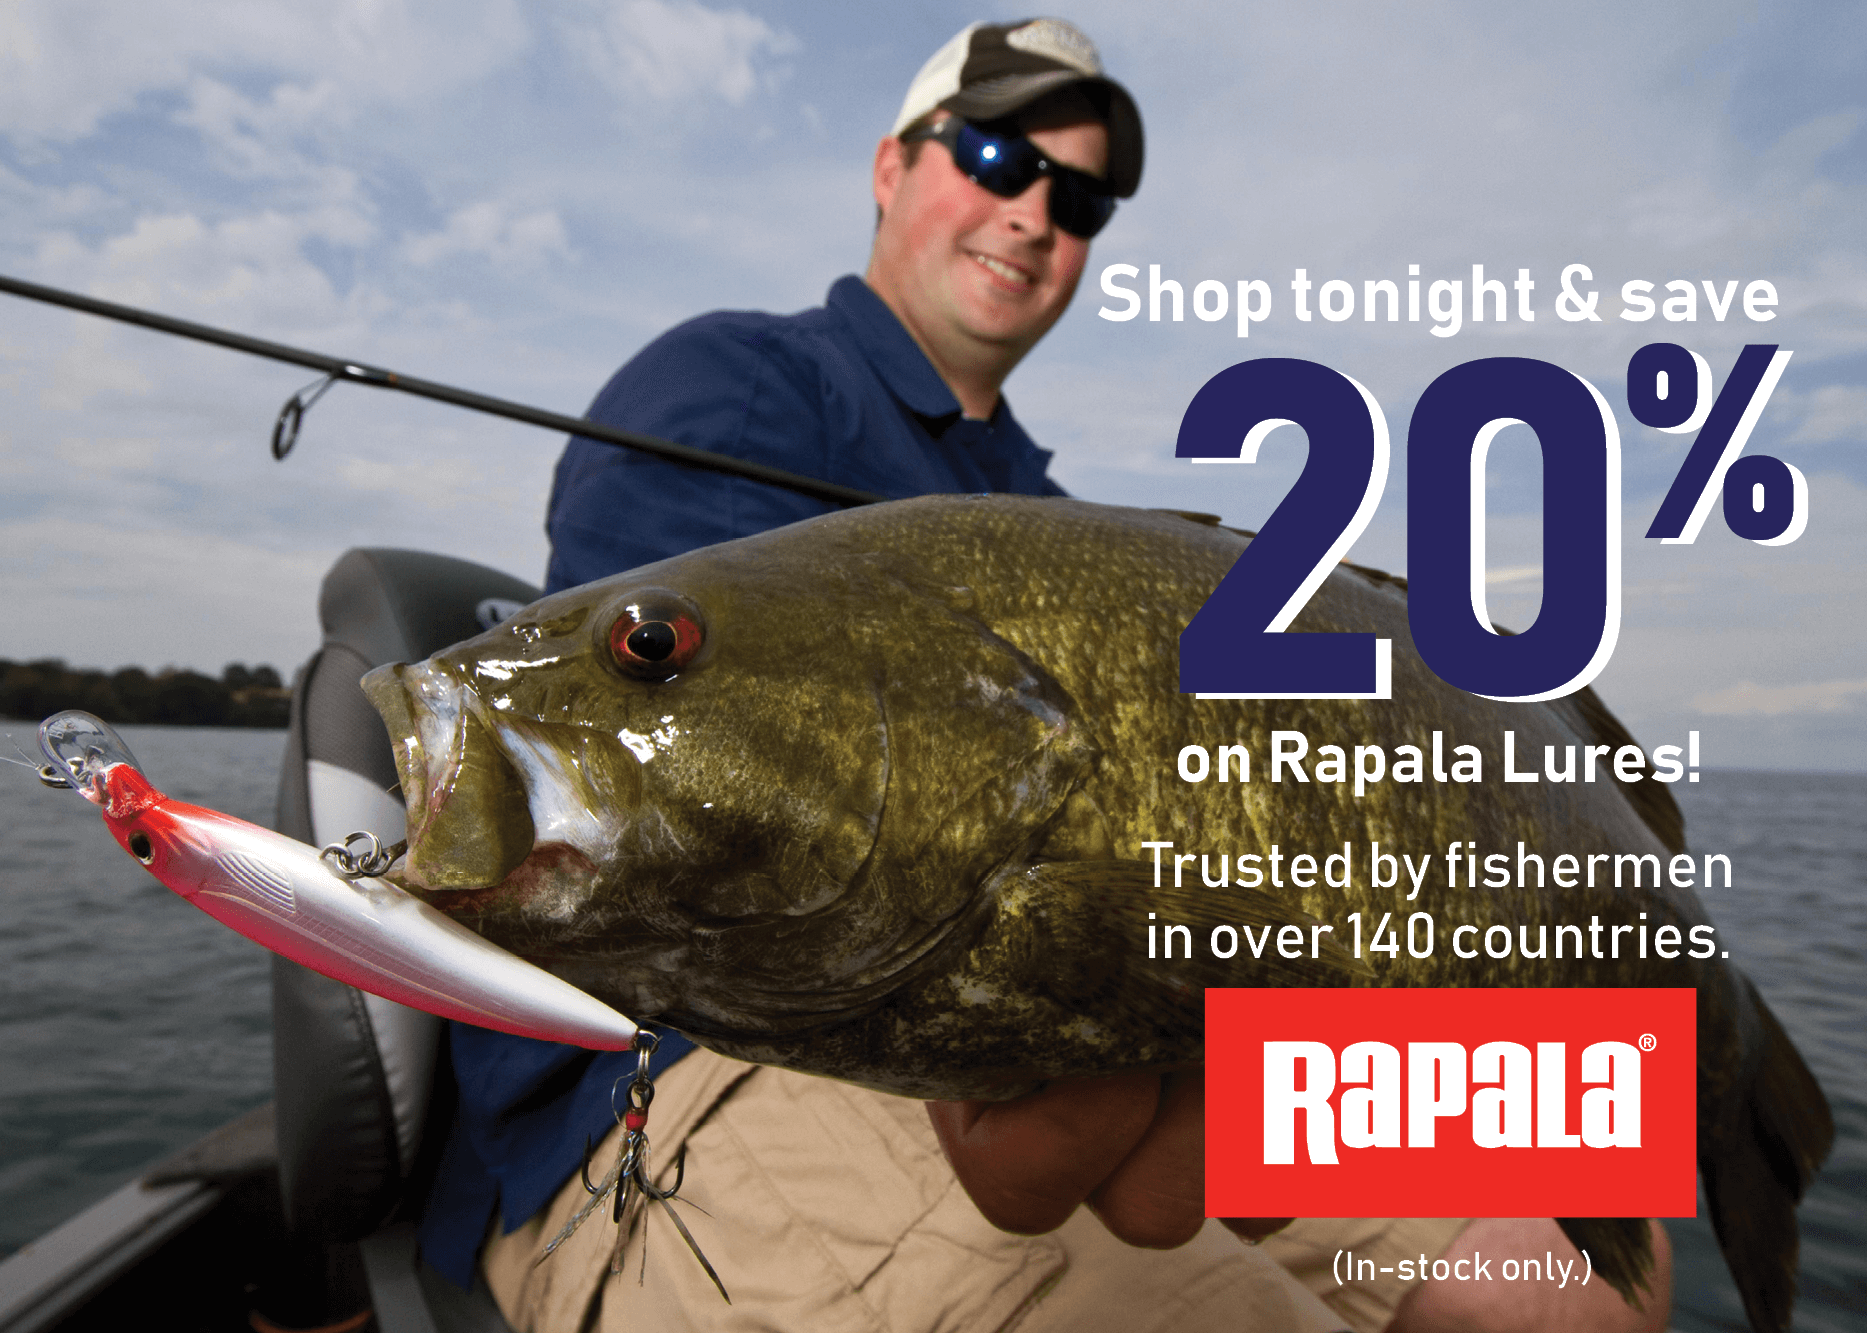 Shop tonight and save 20% on Rapala Lures!